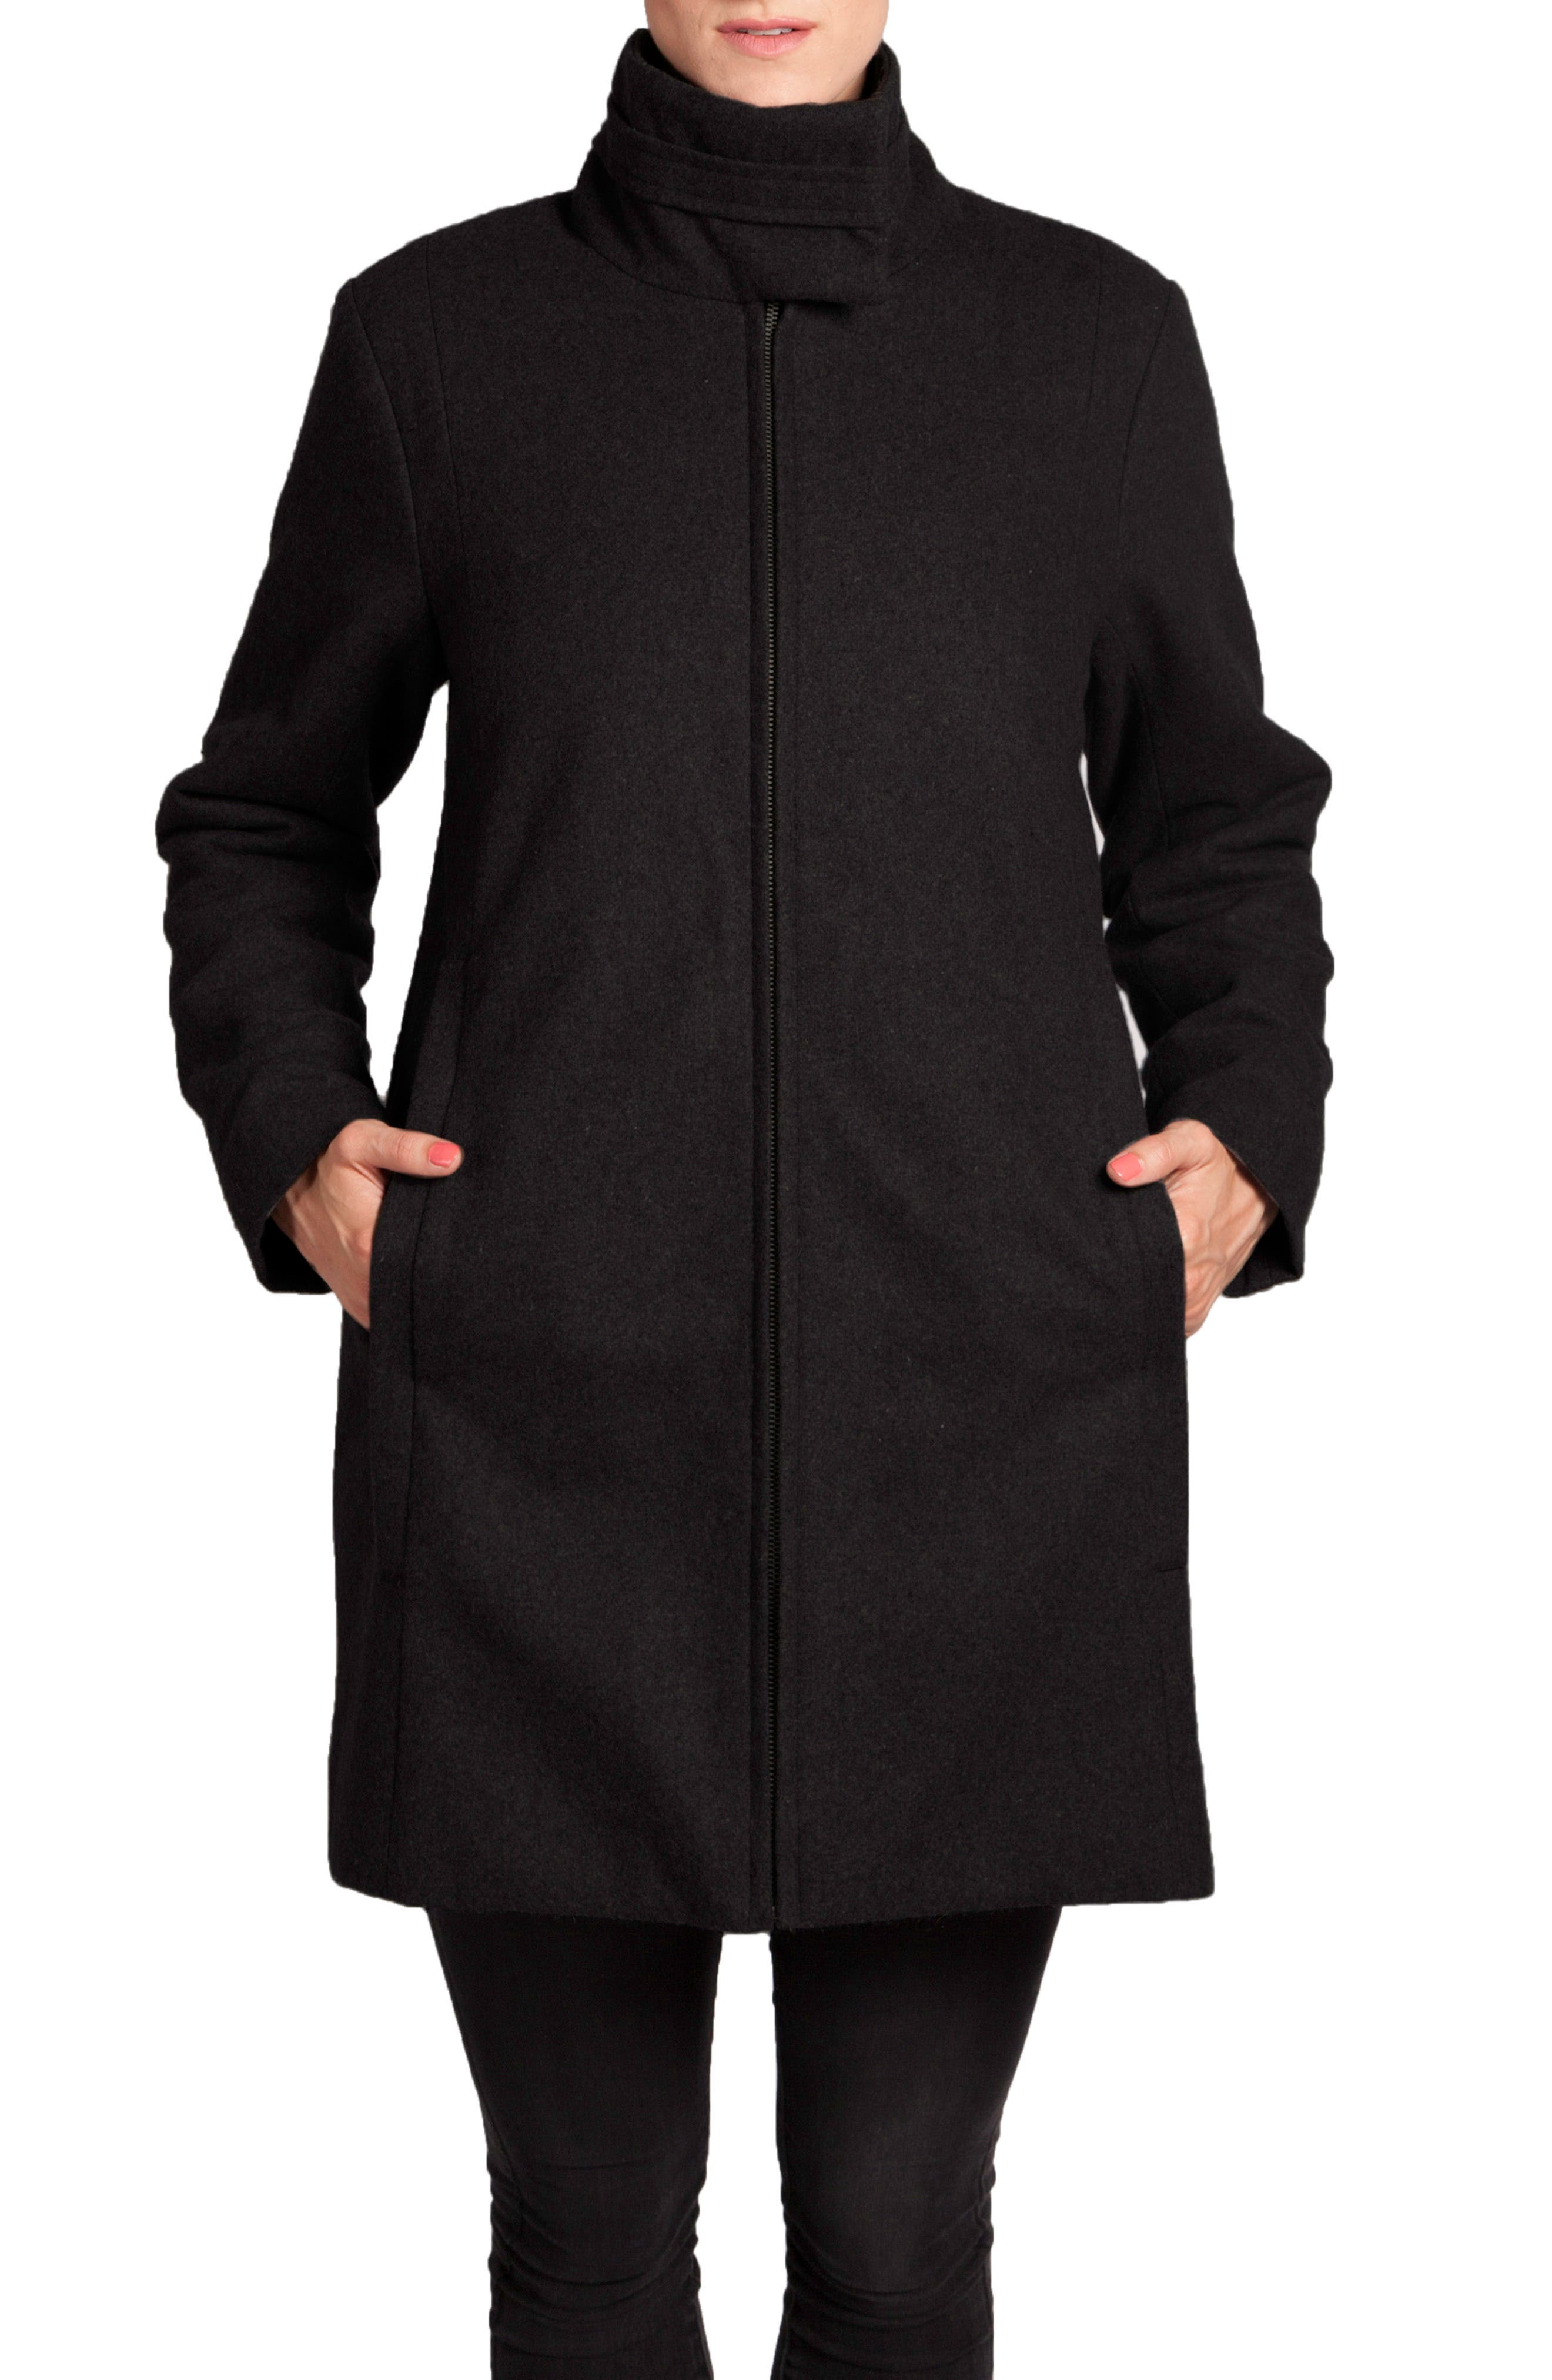 A-Line Convertible 3-in-1 Maternity Swing Coat,                             Alternate thumbnail 4, color,                             BLACK